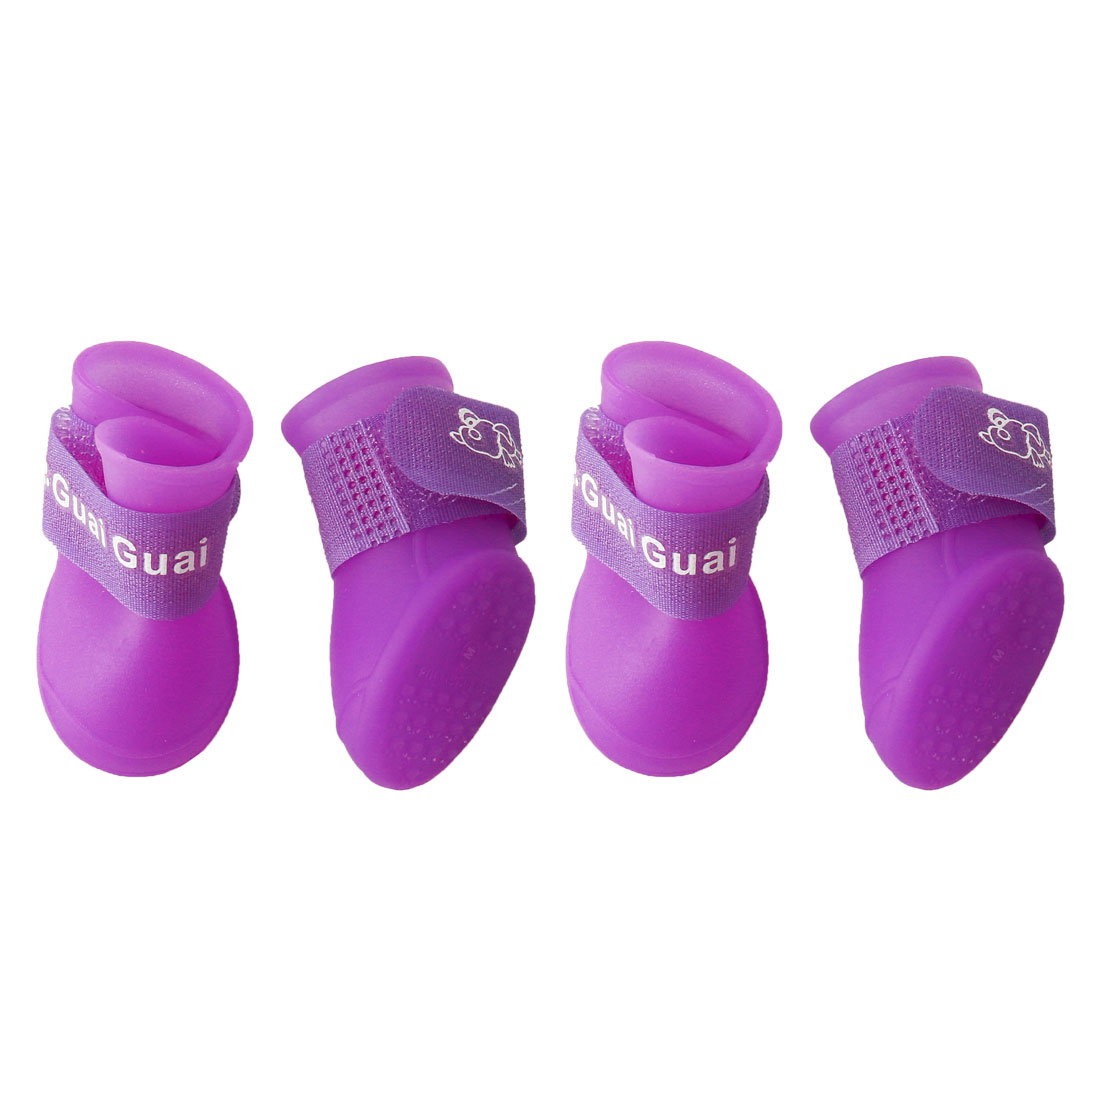 Dog Rain Shoes Pet Boots Water Resistant for Dog Paw Protectors Purple 4pcs, M